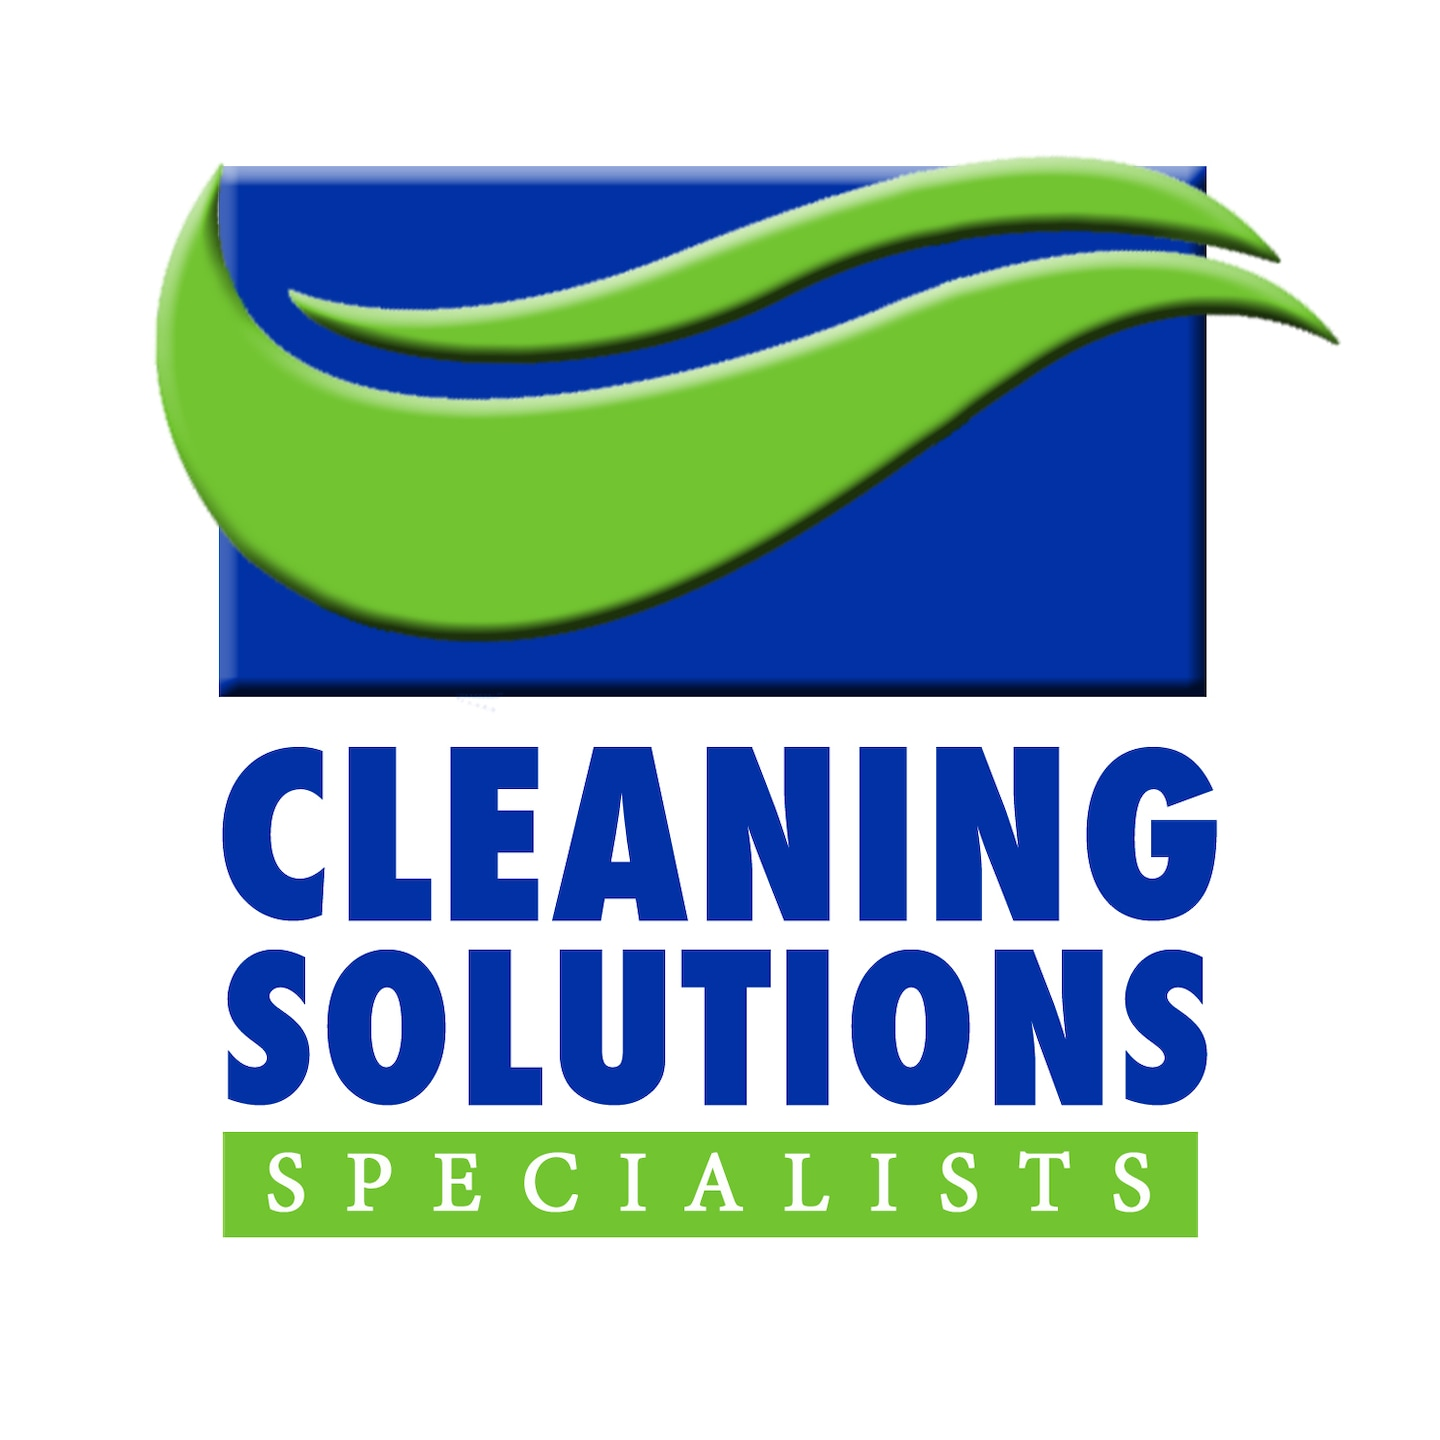 Cleaning Solutions Specialists, LLC